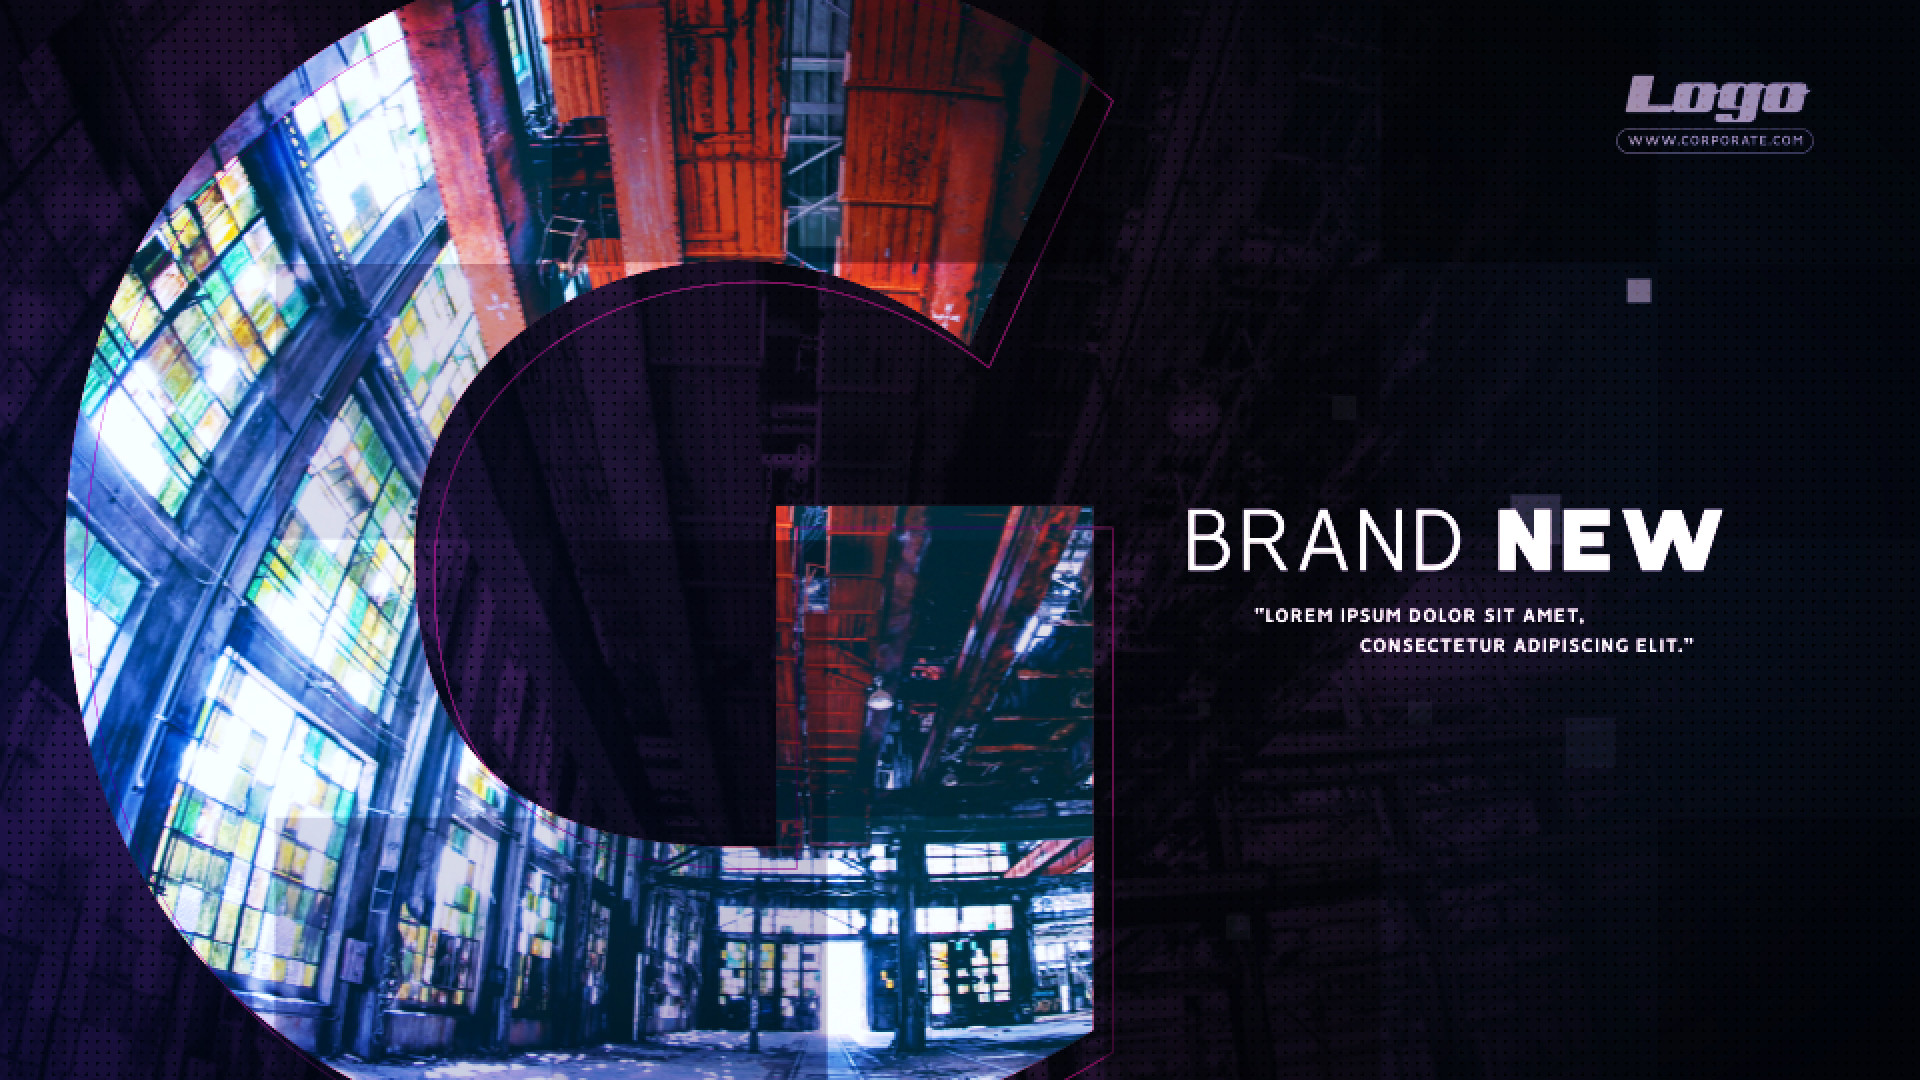 Promo Slideshow - After Effects 128604 - Free download